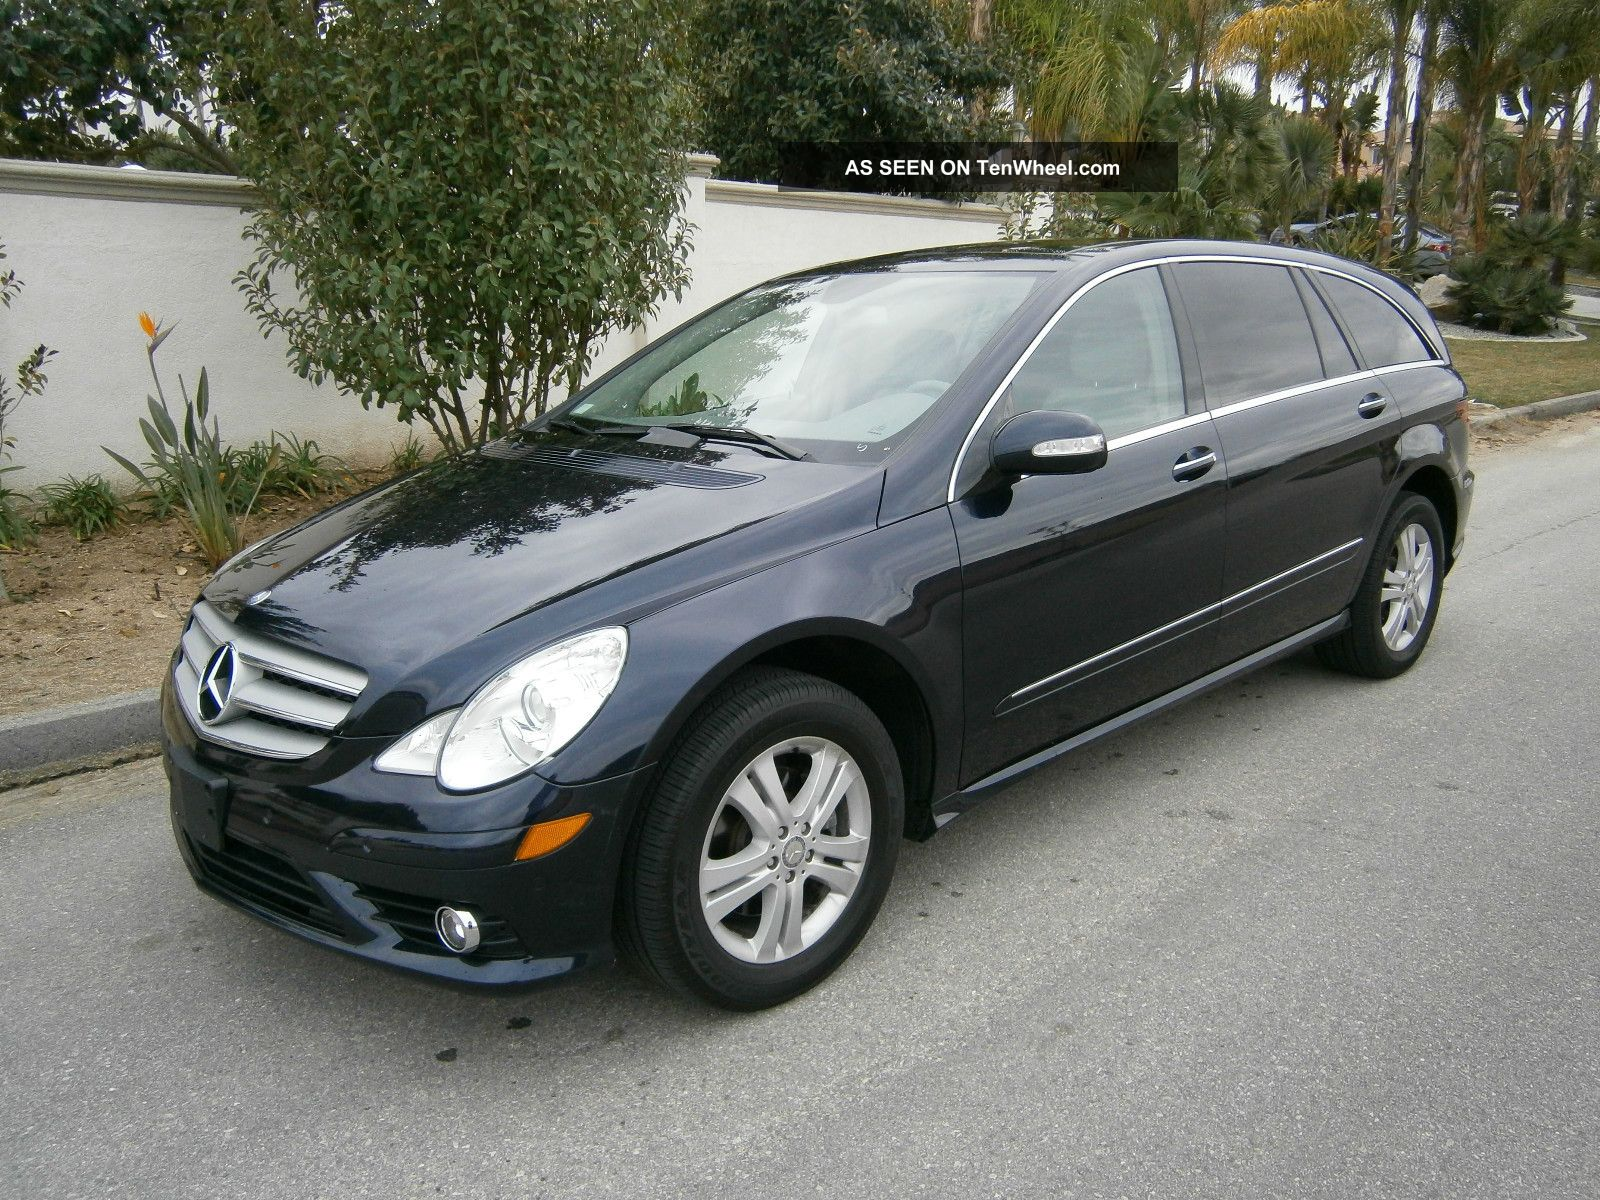 2008 mercedes benz r320 cdi 3 0l diesel pano roof for Mercedes benz r320 cdi